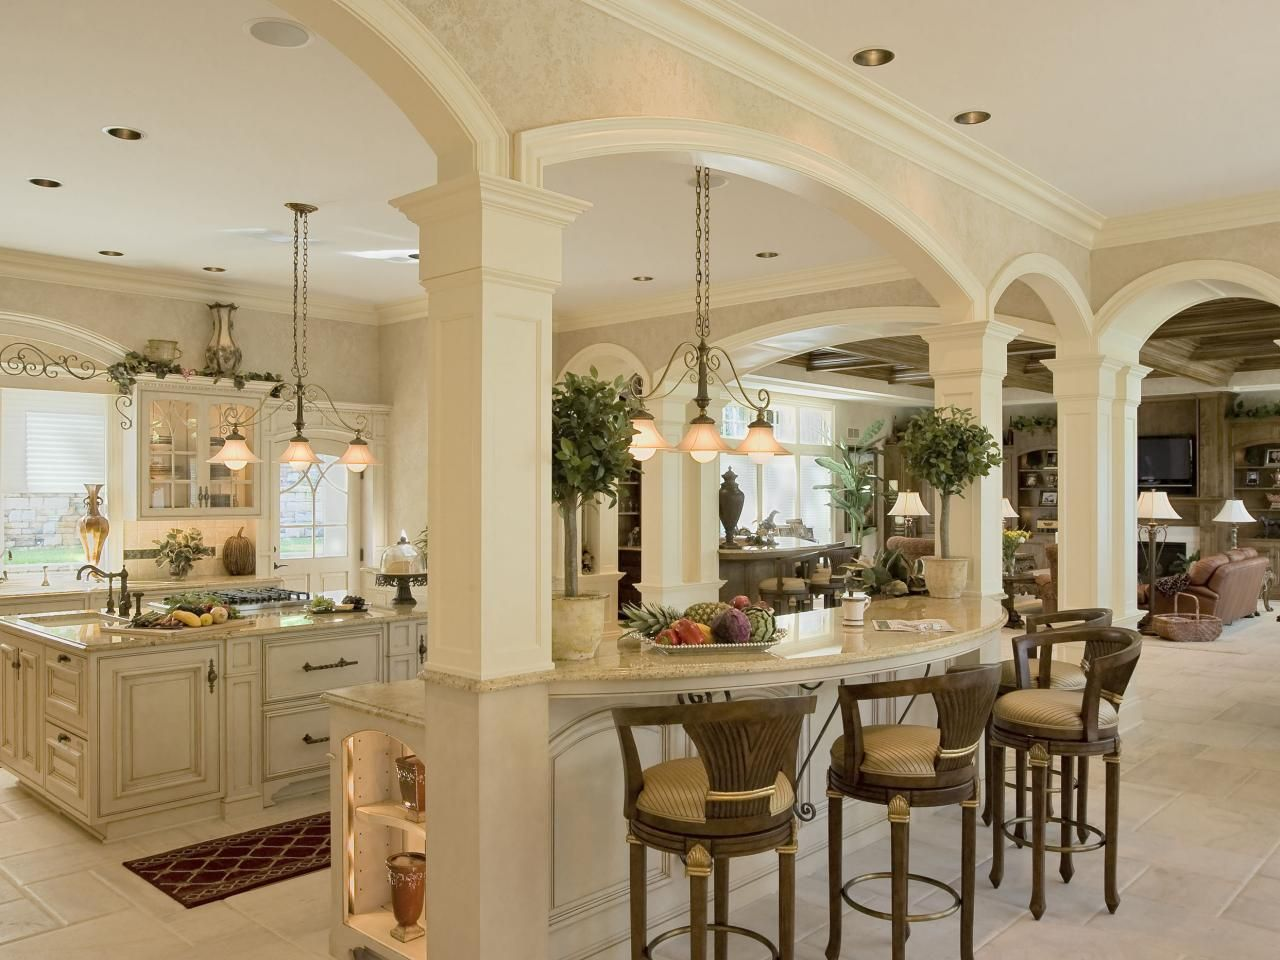 Bon Amazing Kitchen Design Country Style Amazing Kitchens Kitchen Ideas Amp  Design With Cabinets Islands Within Amazing Kitchen Design Country Style